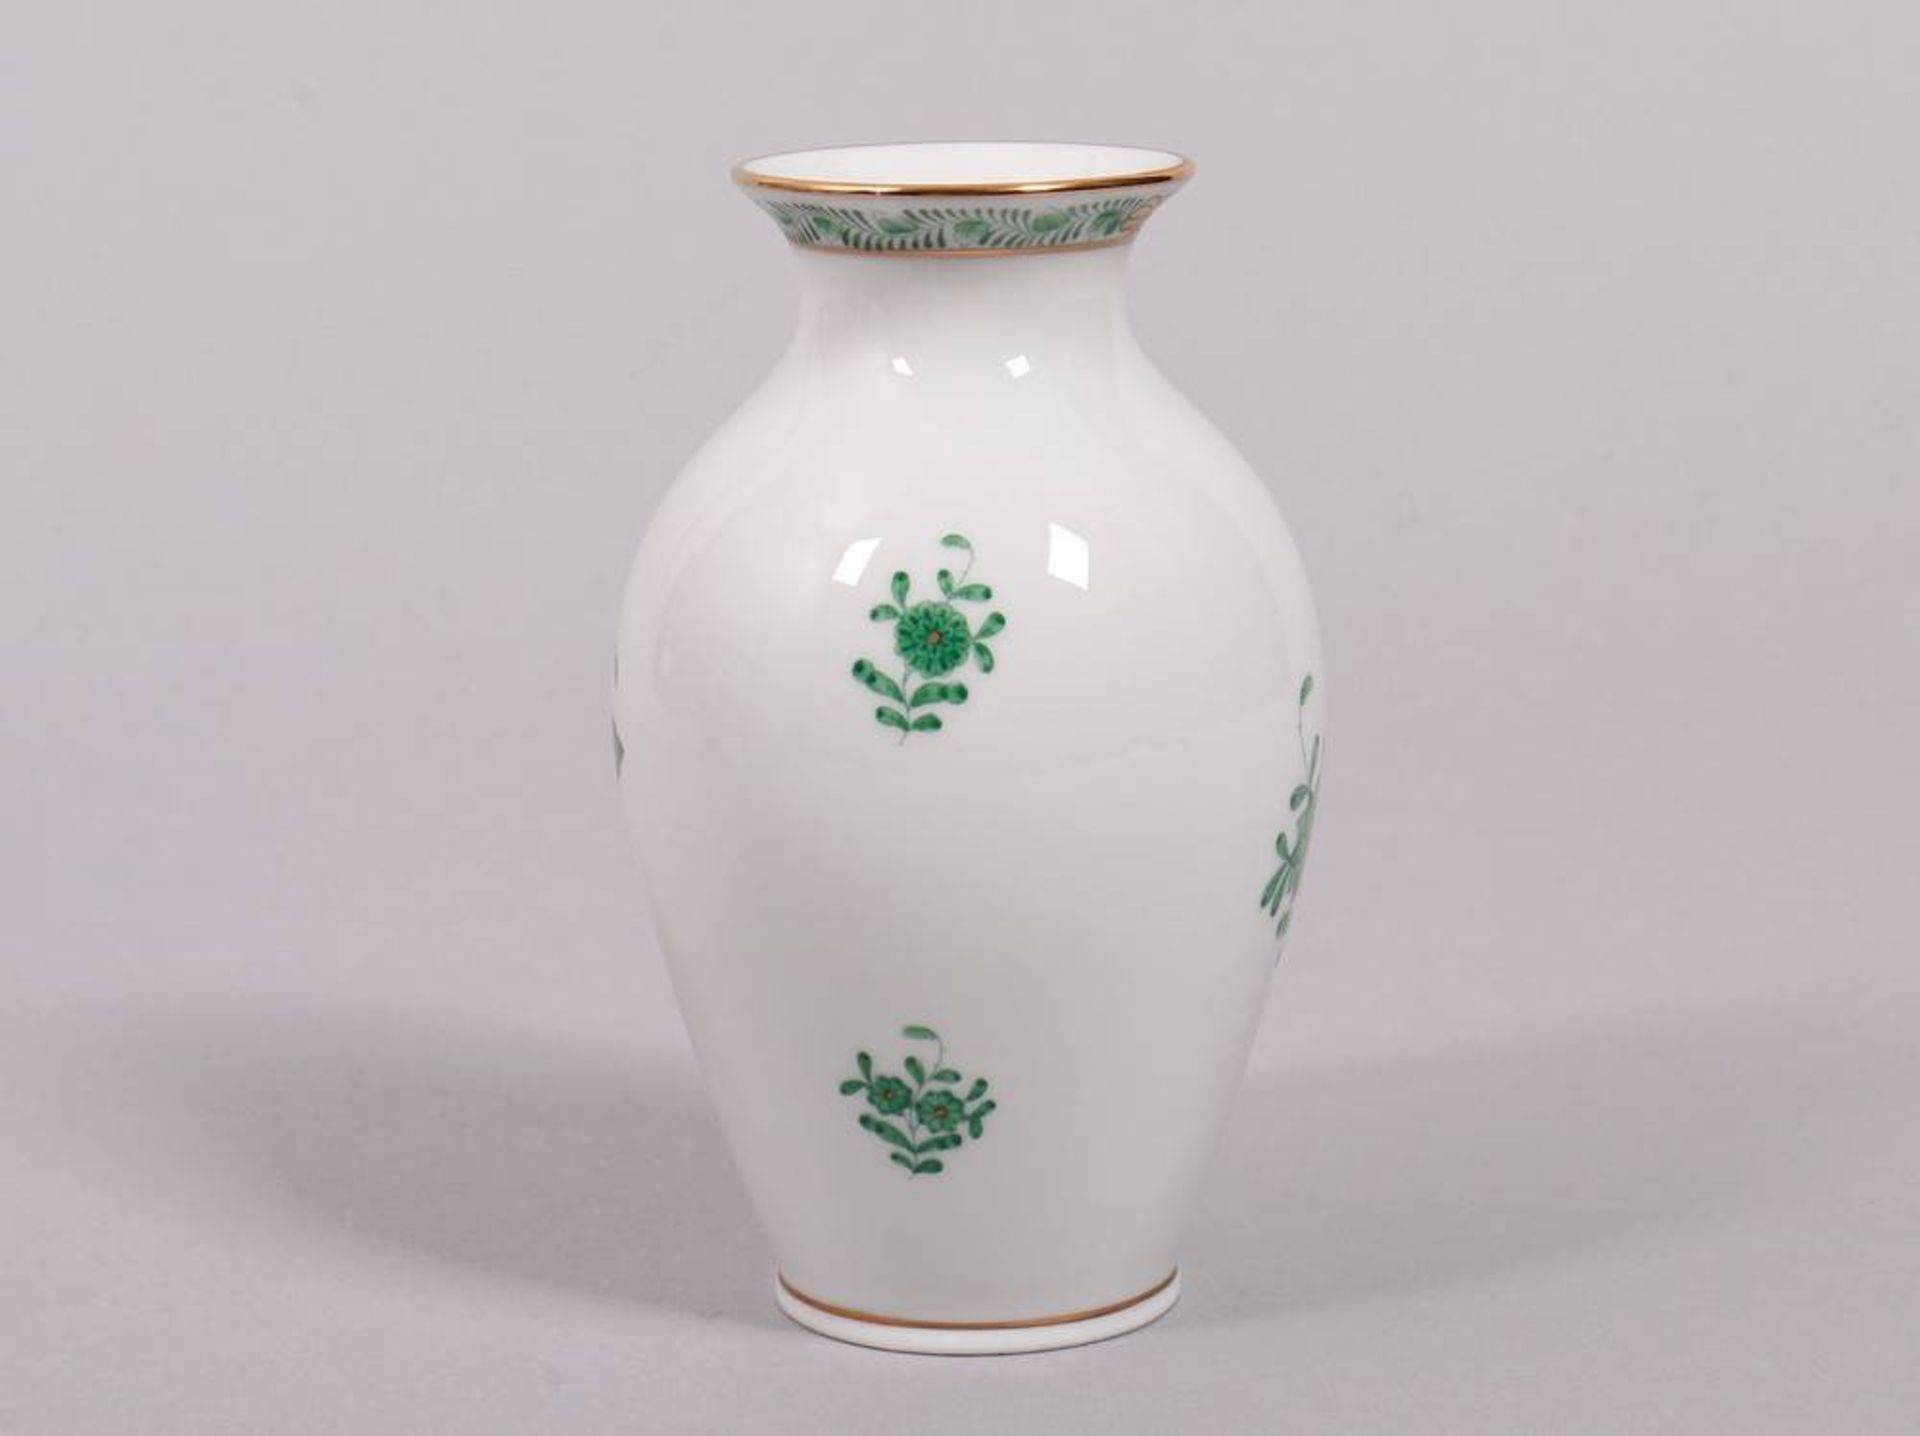 """Small vase, Herend, Hungary, 20th C., """"Apponyi green"""" decor - Image 2 of 3"""